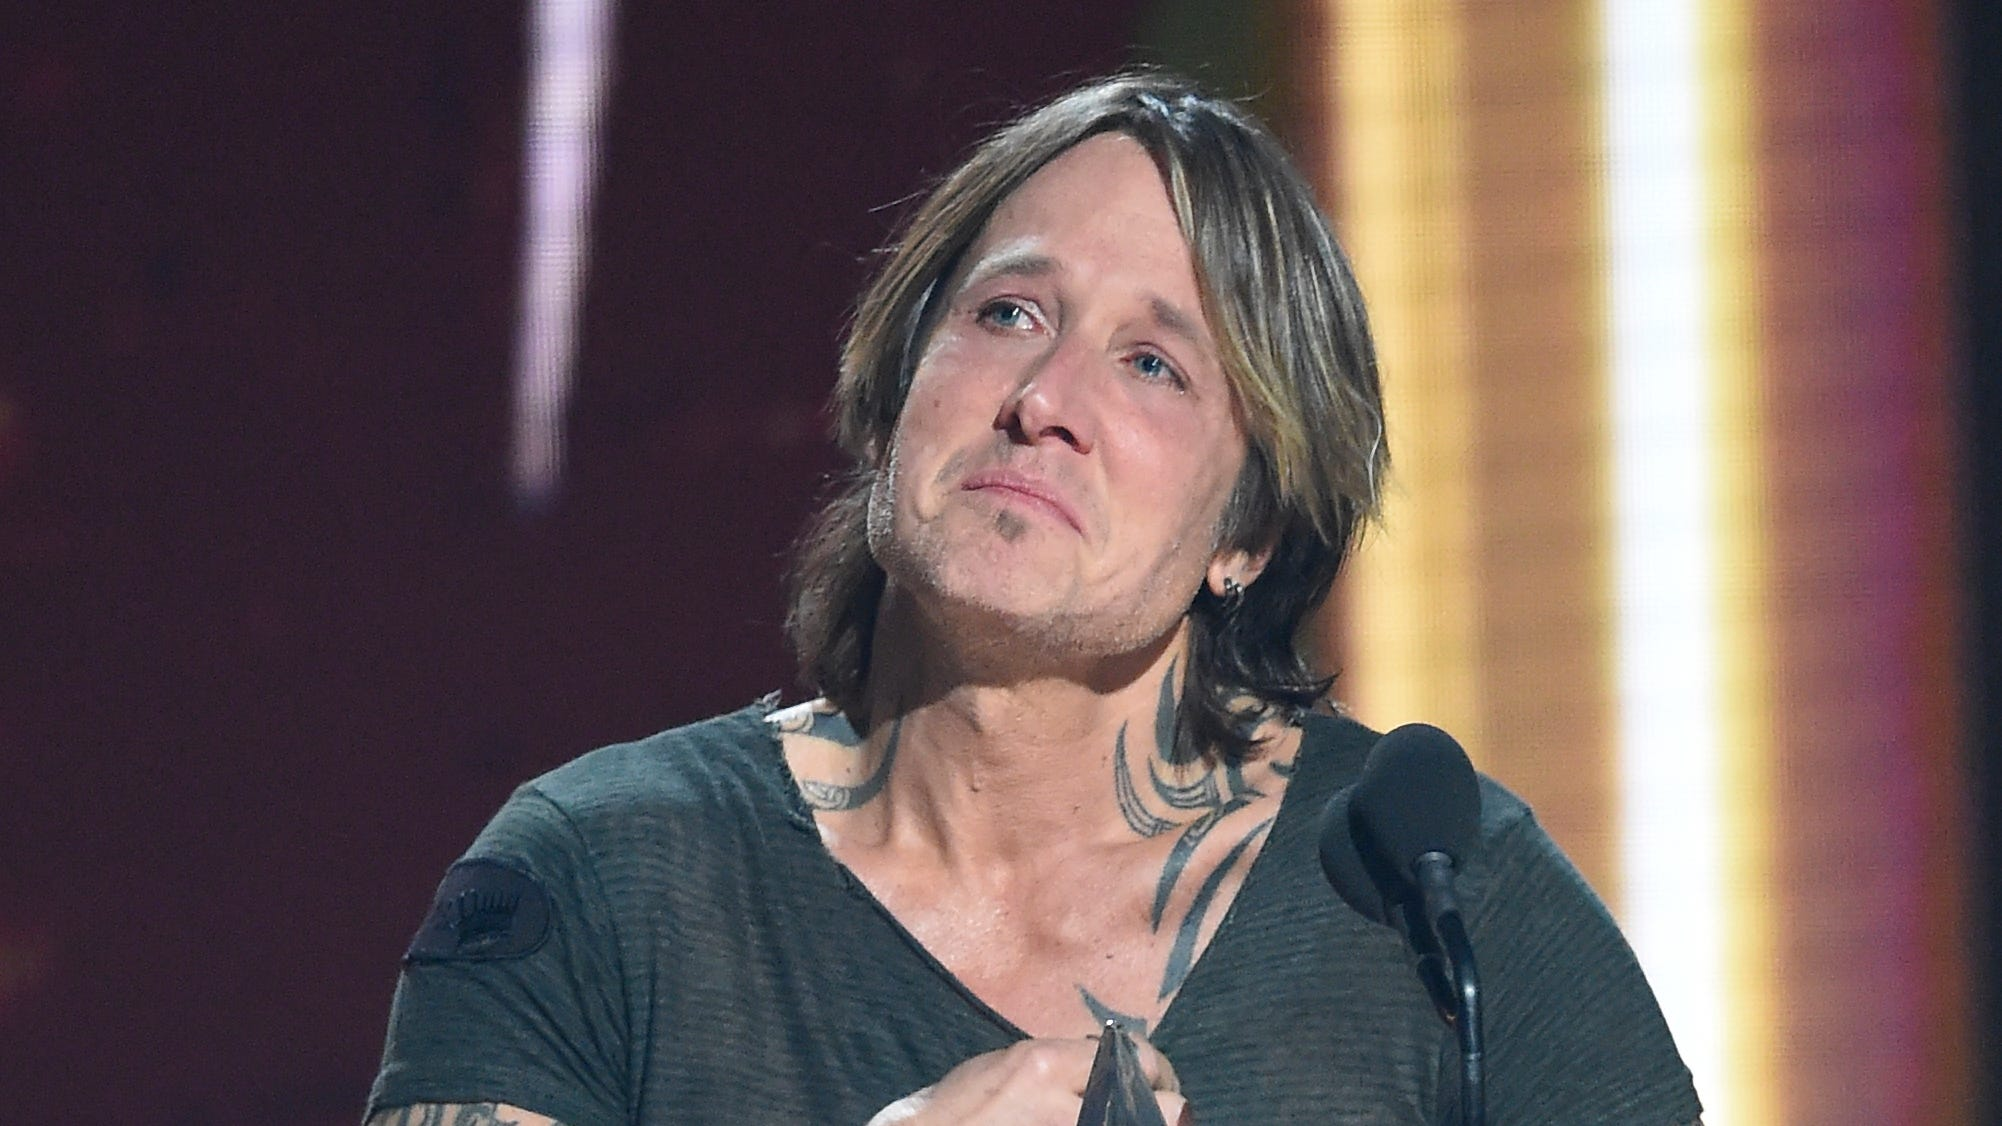 Keith Urban gets emotional as he accepts the Entertainer of the Year award during the 52nd Annual CMA Awards at Bridgestone Arena Wednesday Nov. 14, 2018, in Nashville, Tenn.